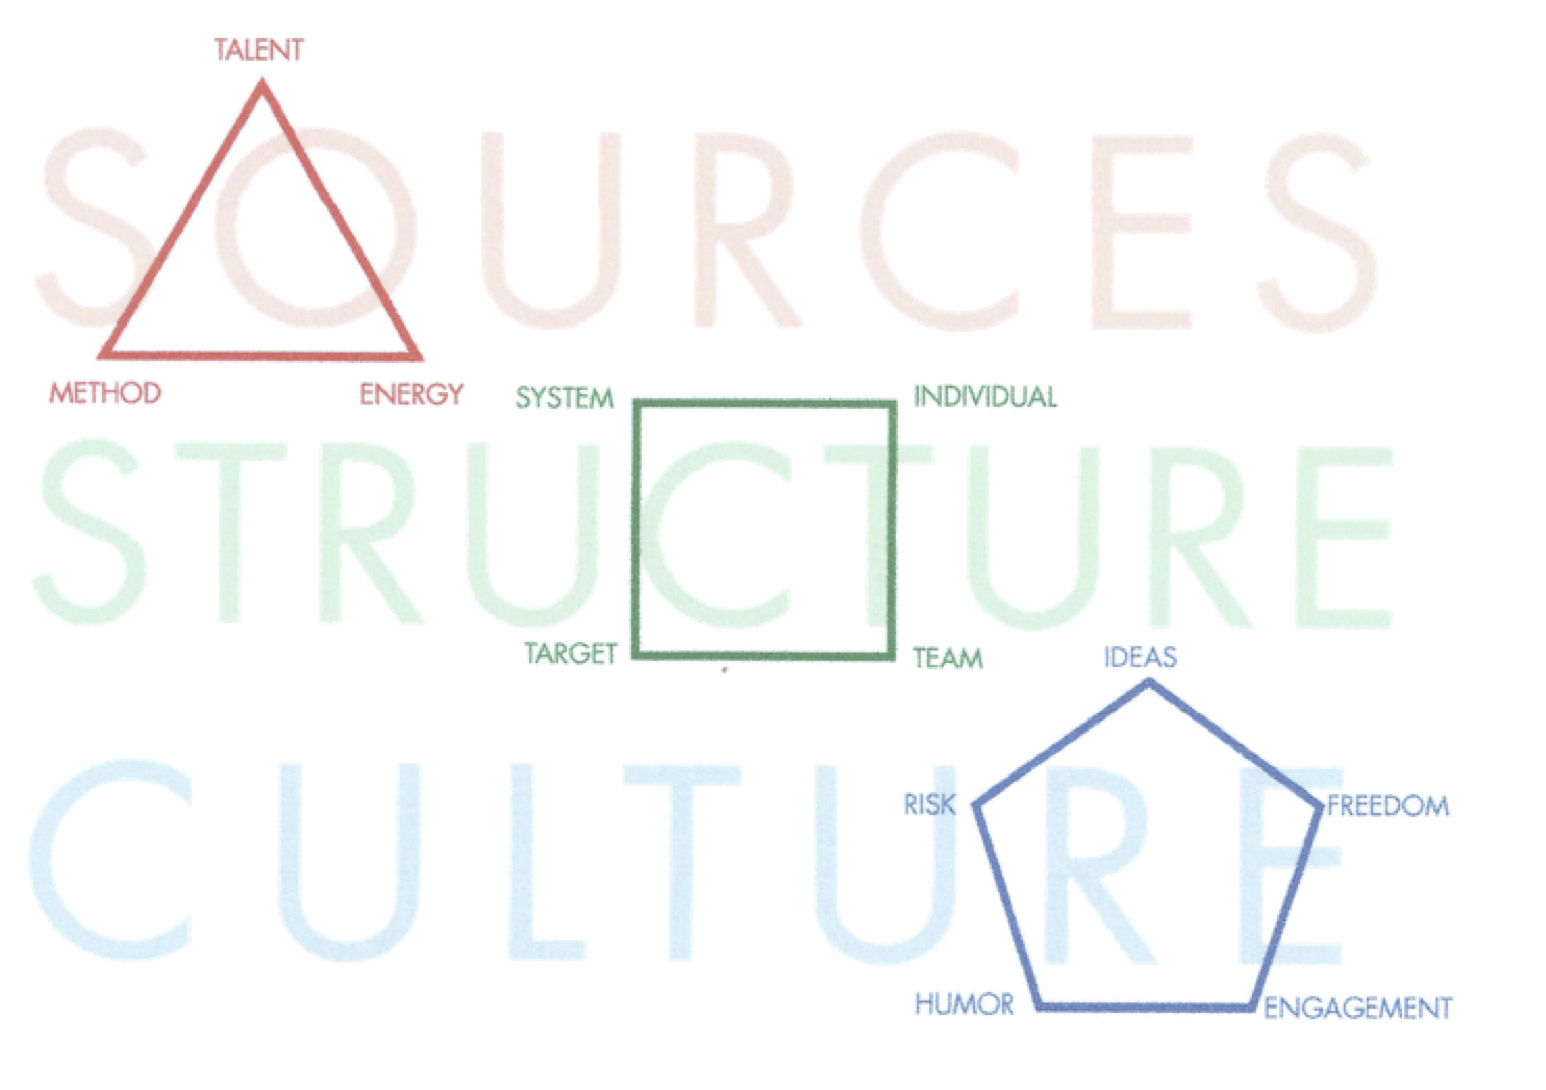 The Art of Innovation Structures Sources Culture